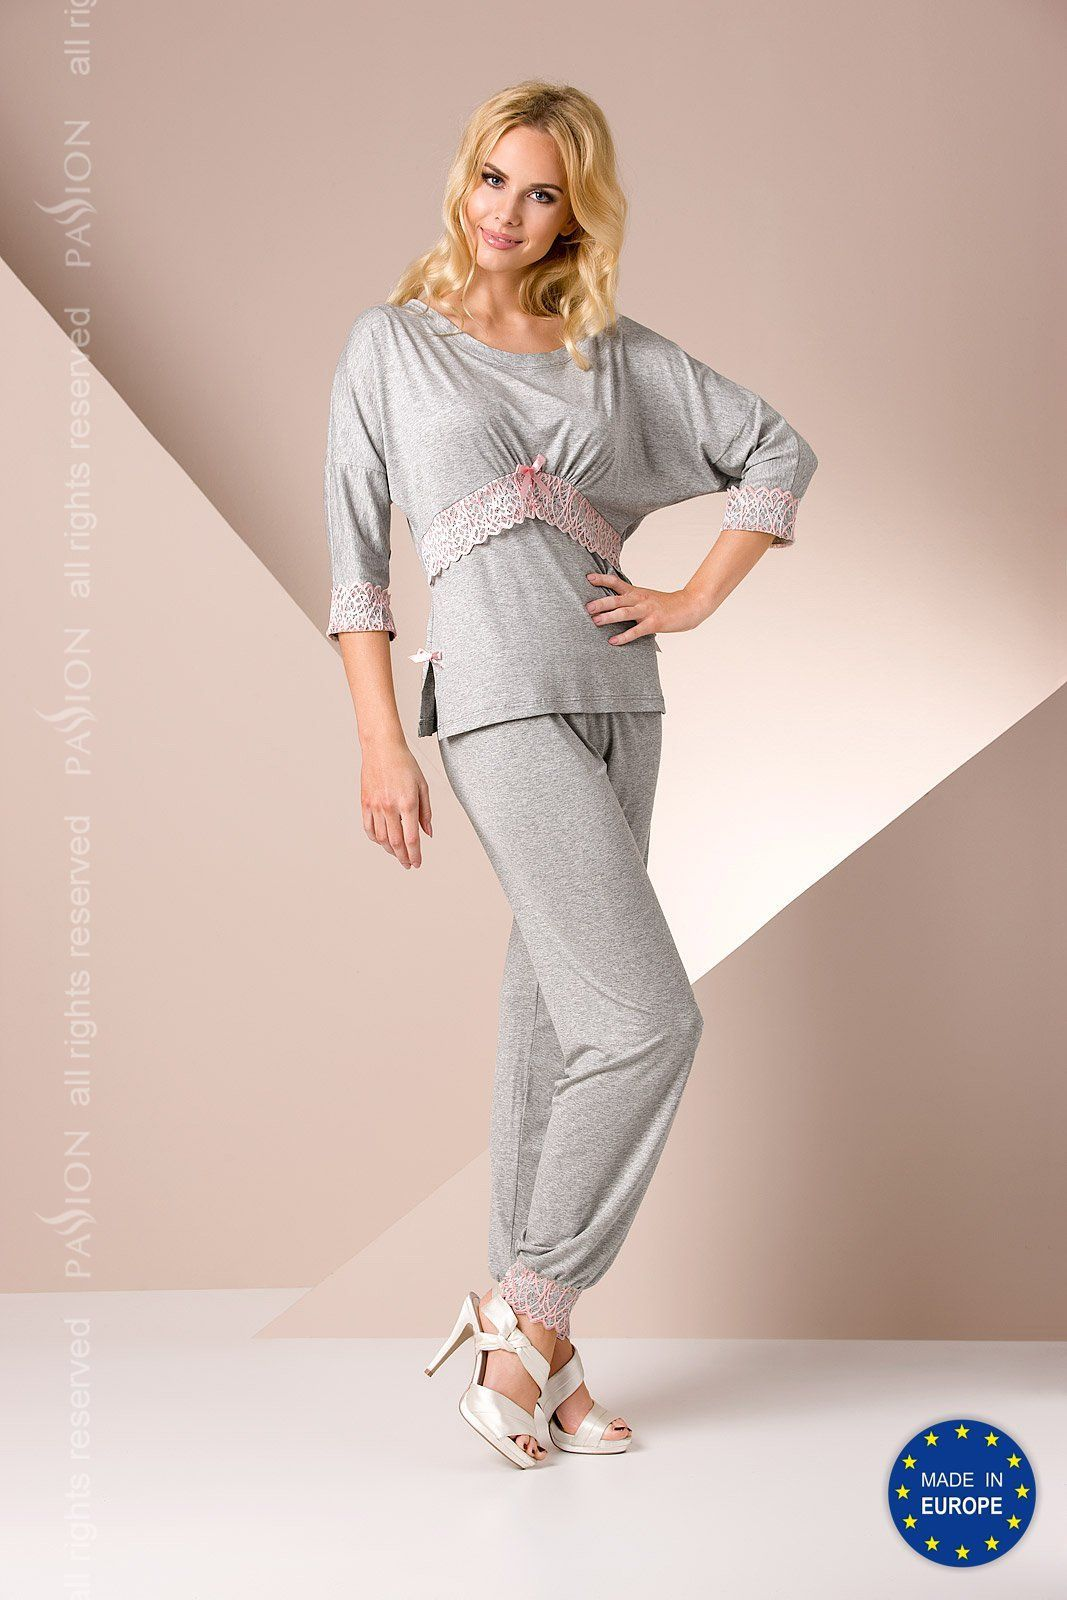 пижама py009 pyjamas grey